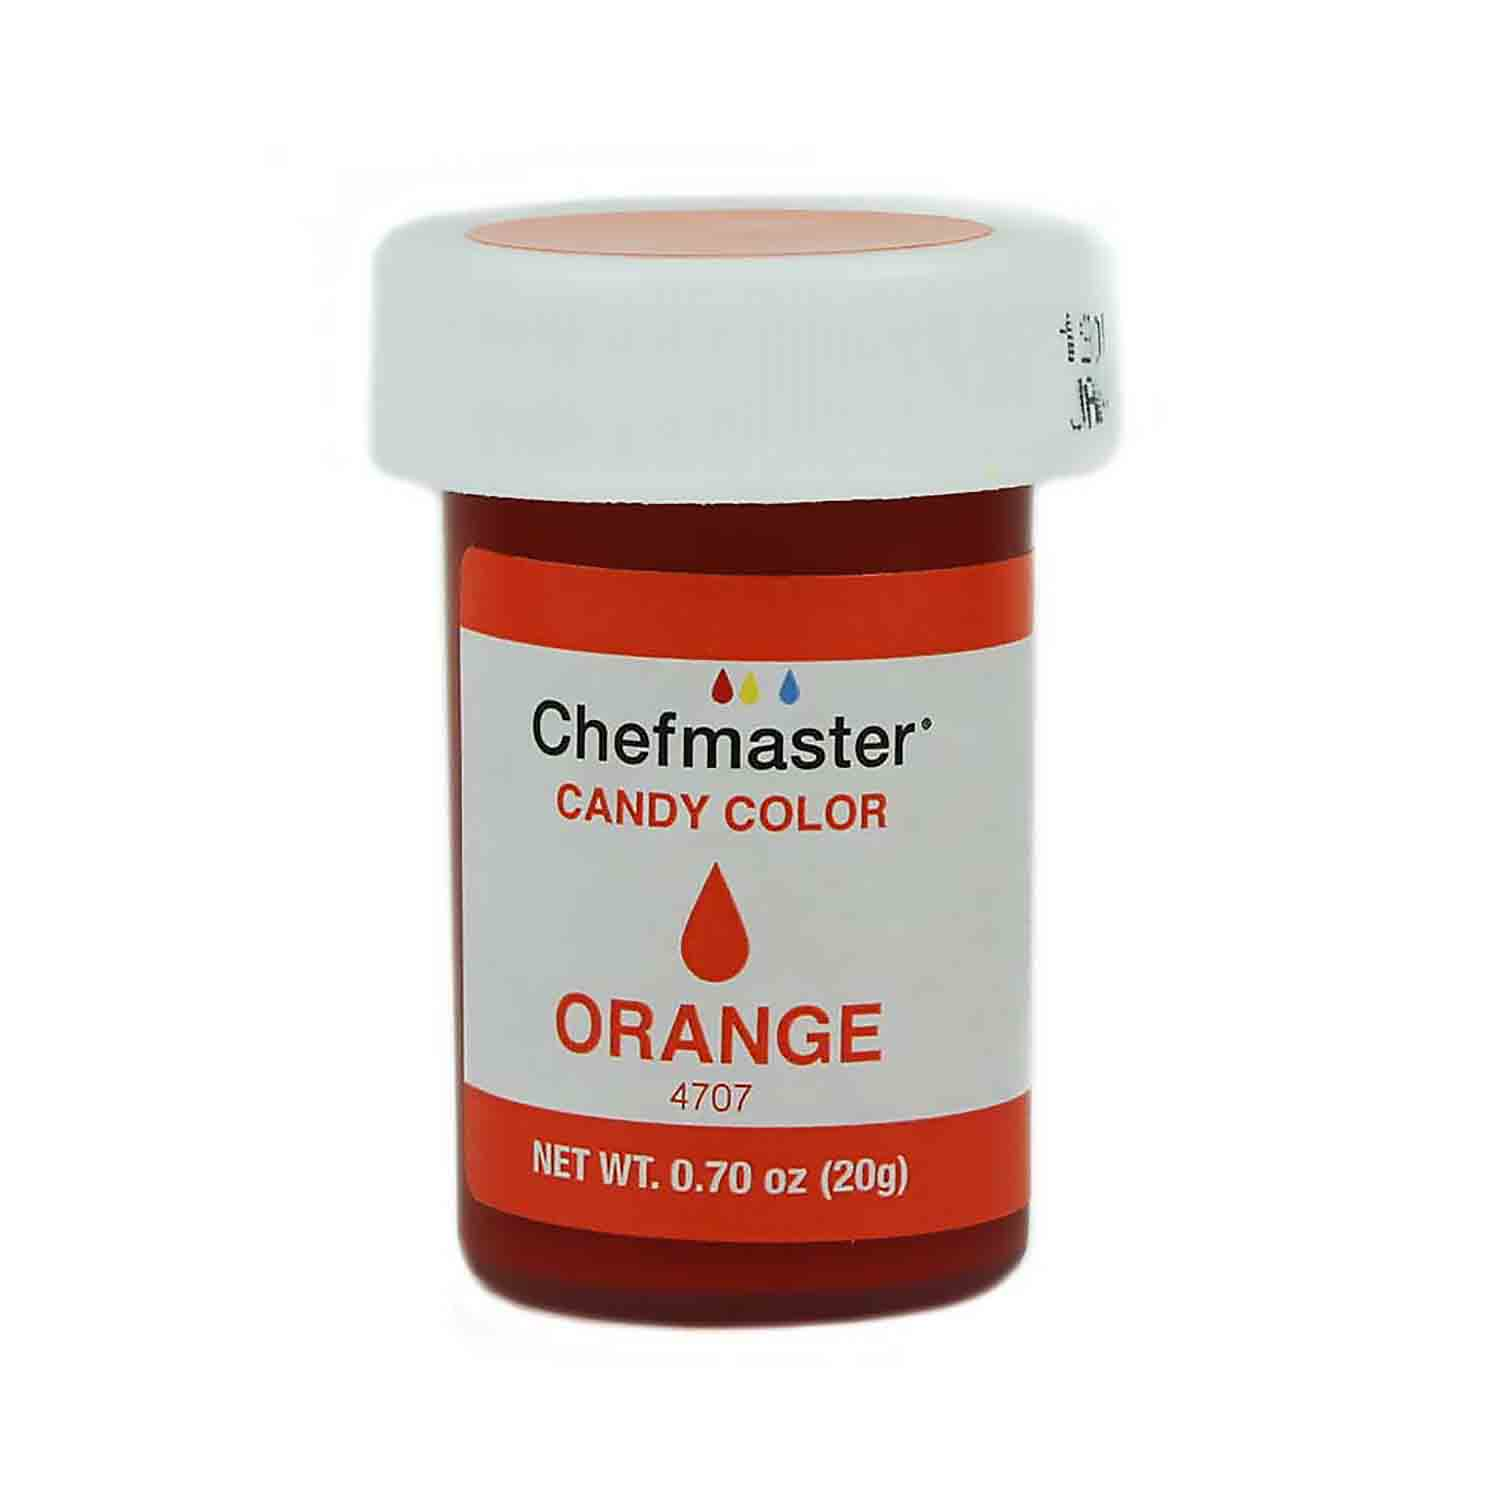 Orange Chefmaster Candy Color